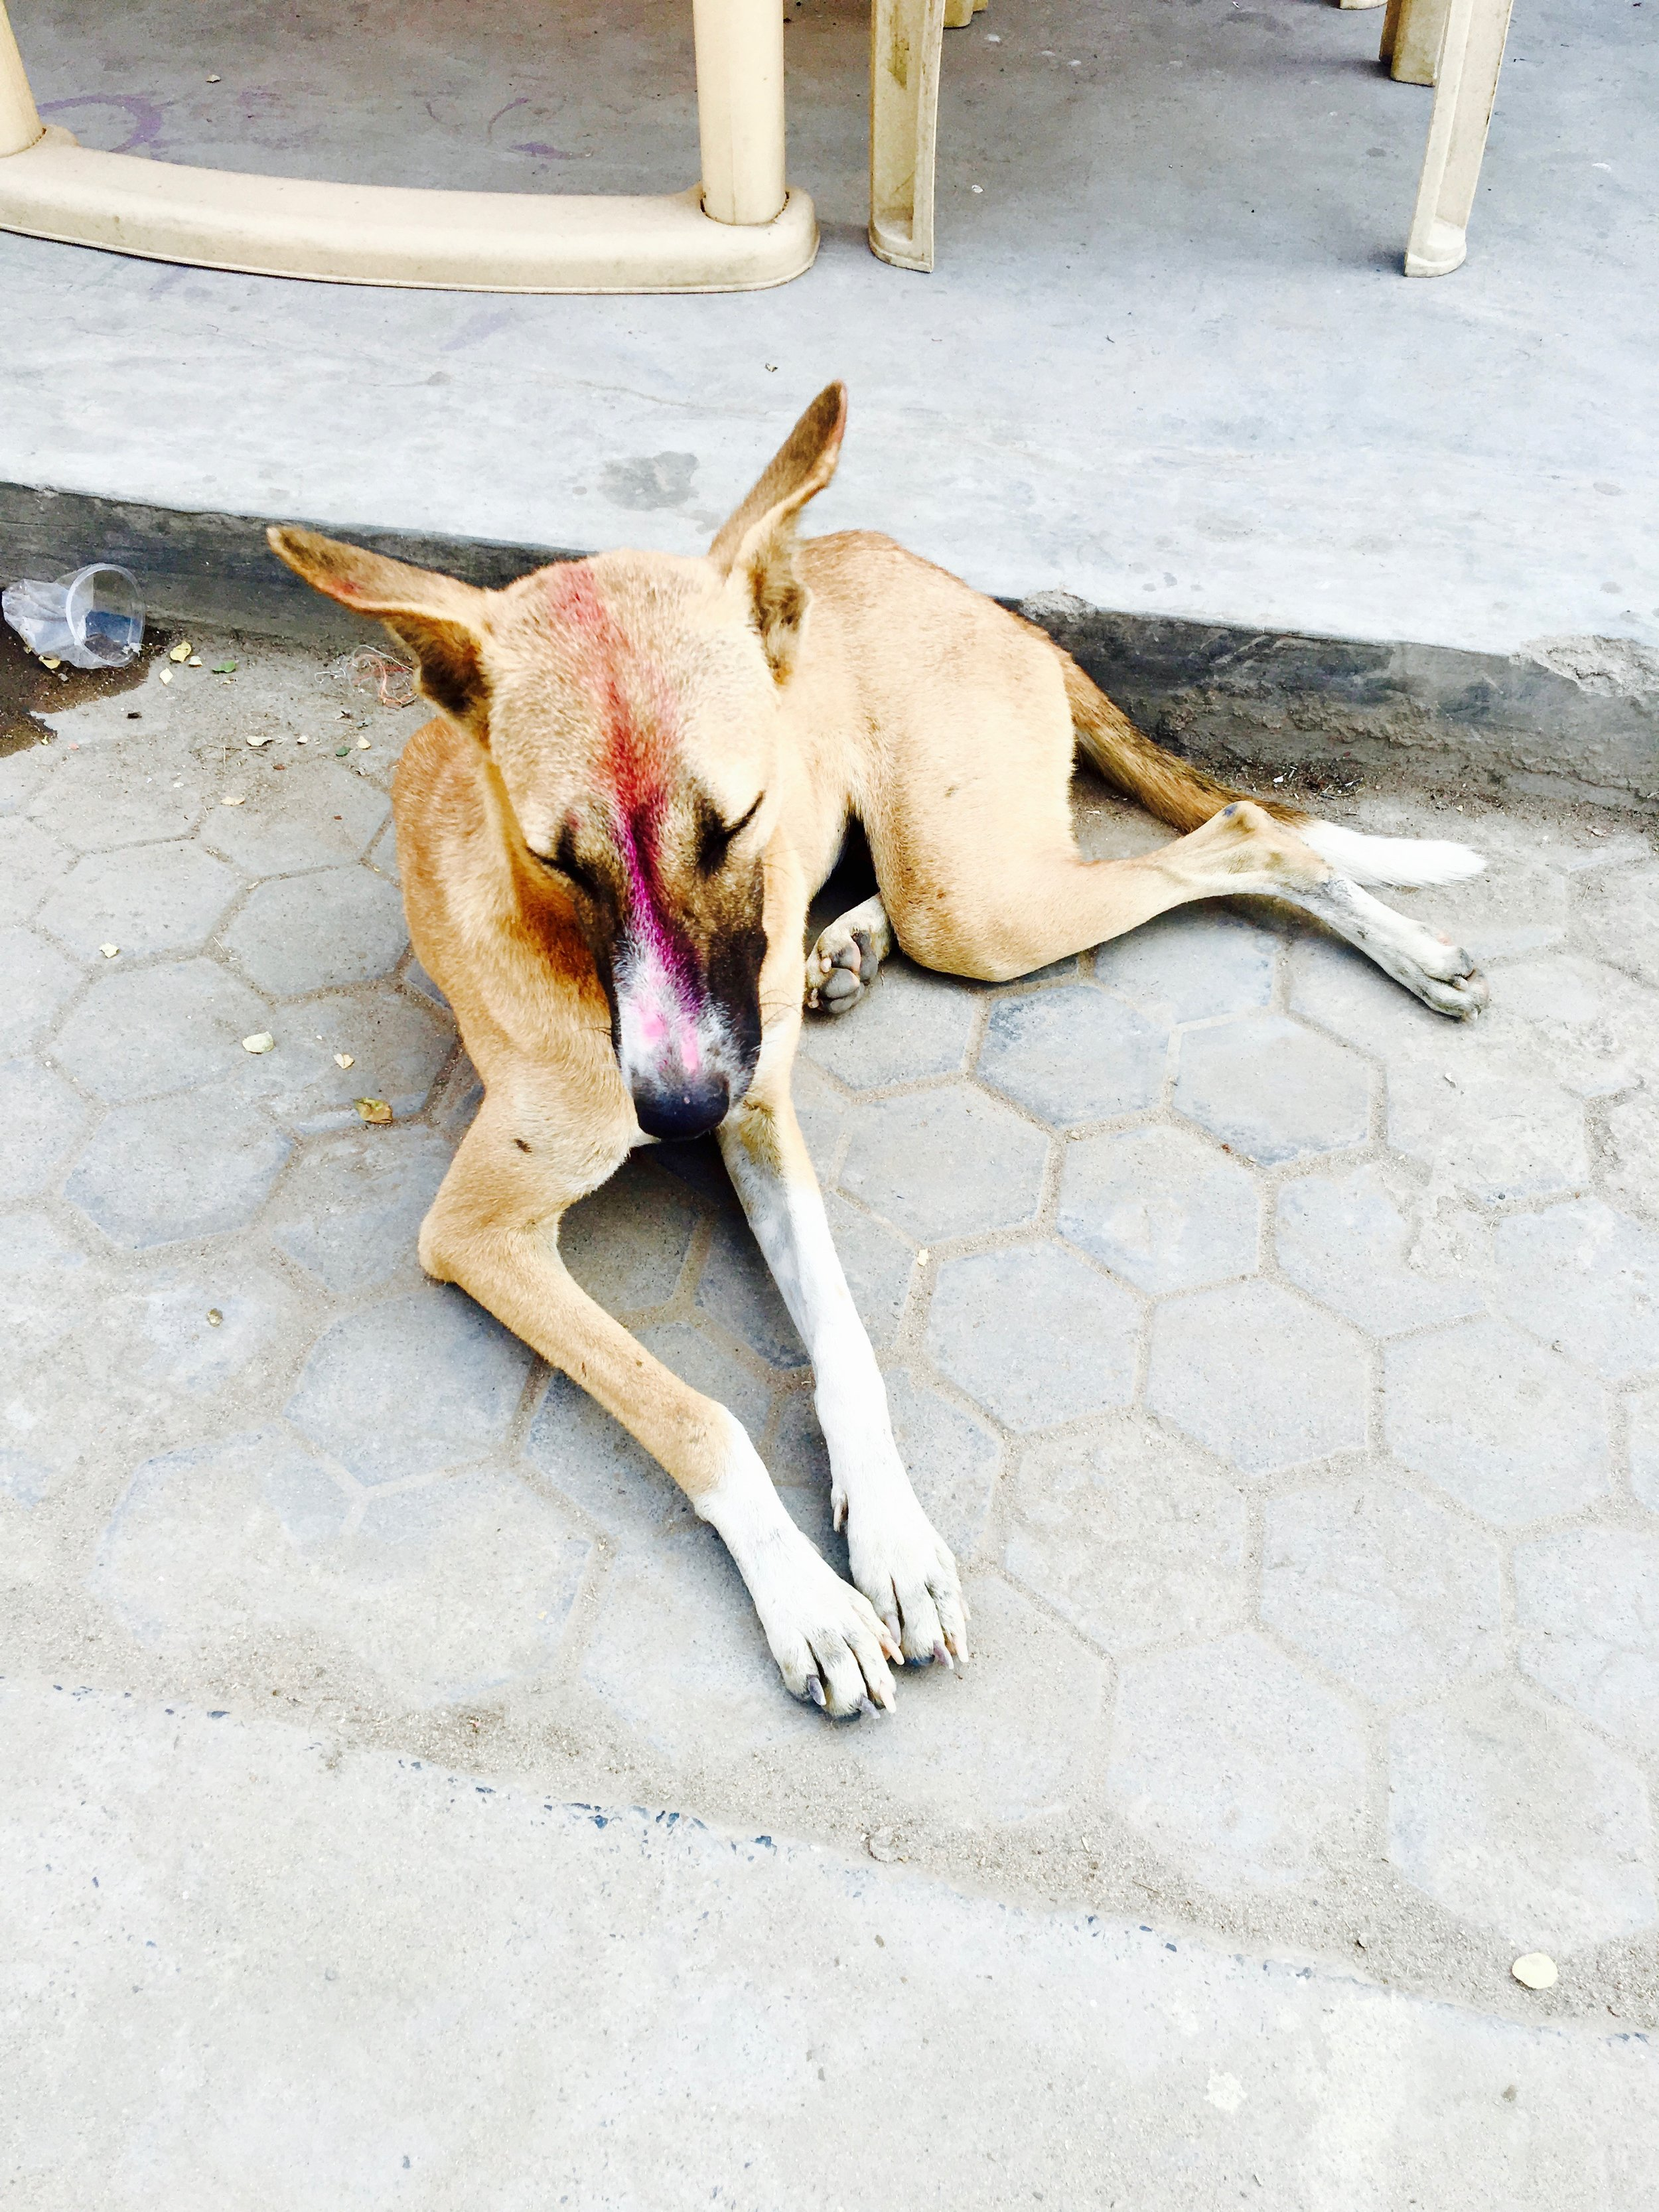 The spirituality in Bodh Gaya is turned up a notch, even with the dogs!